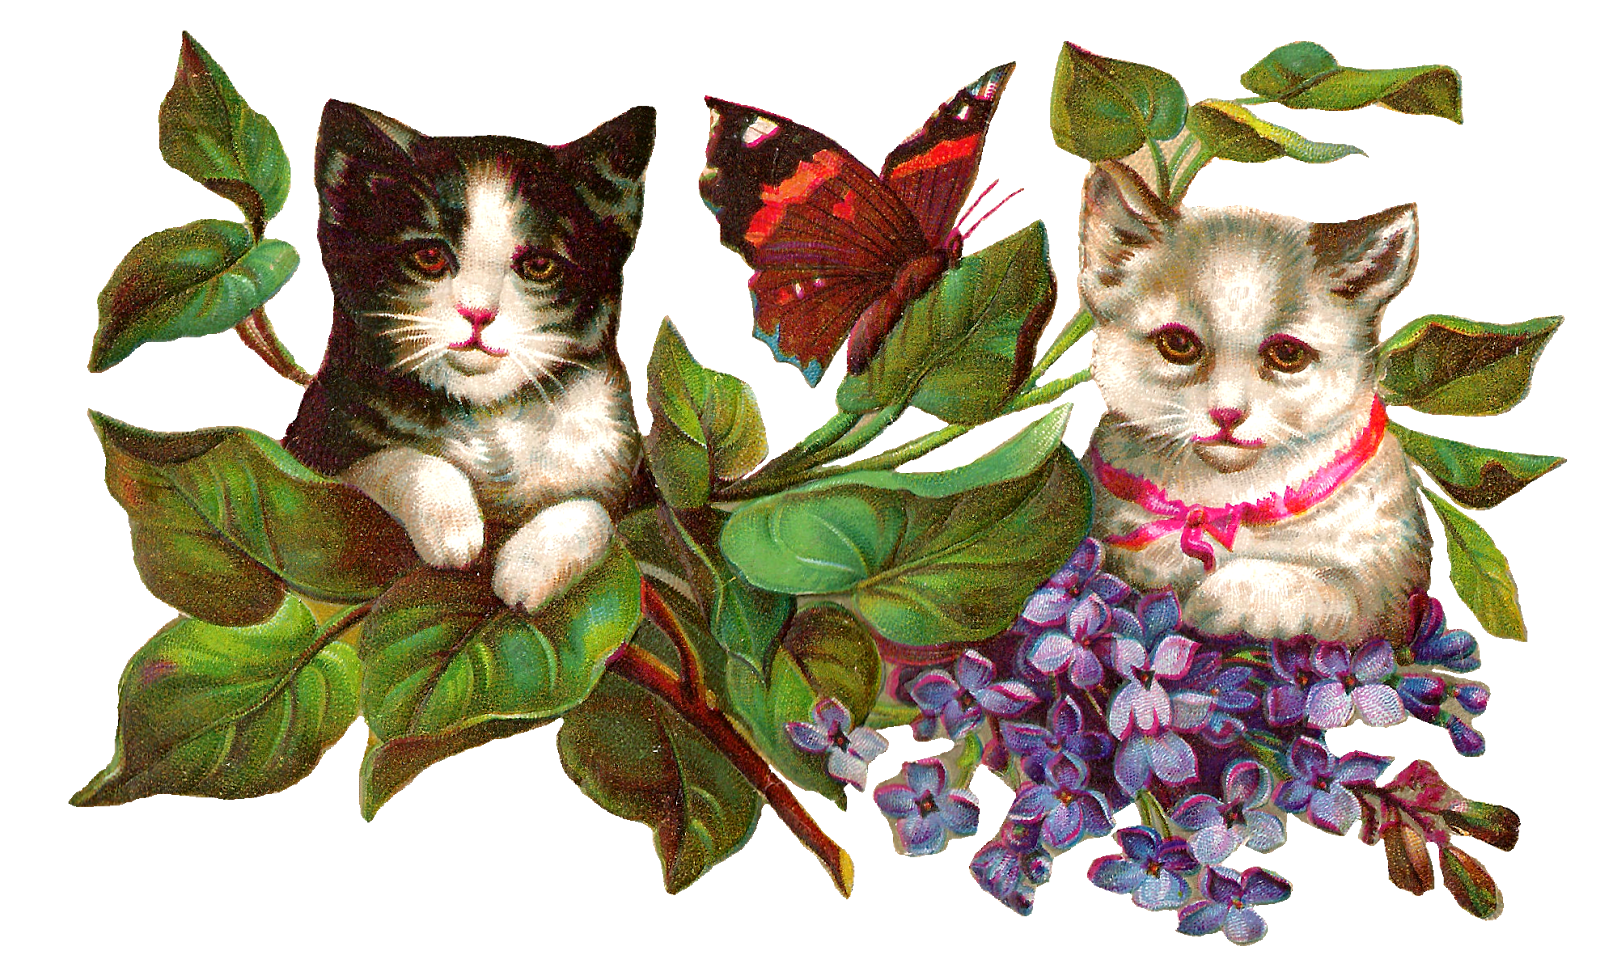 Cat clip art vintage. Antique images image wisteria